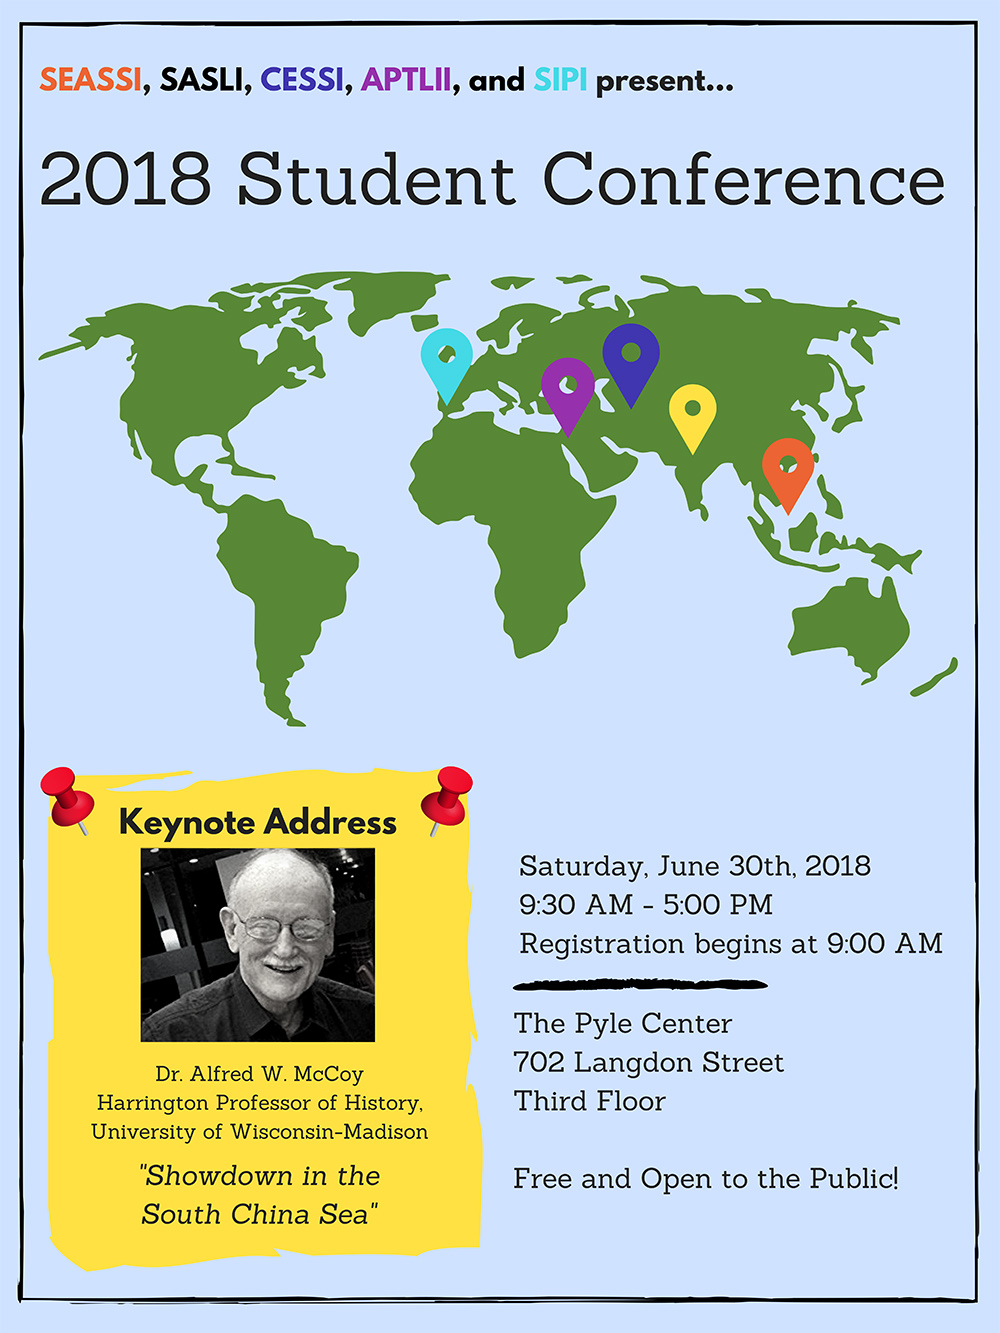 Poster for WISLI conference featuring world map and keynote speaker photo